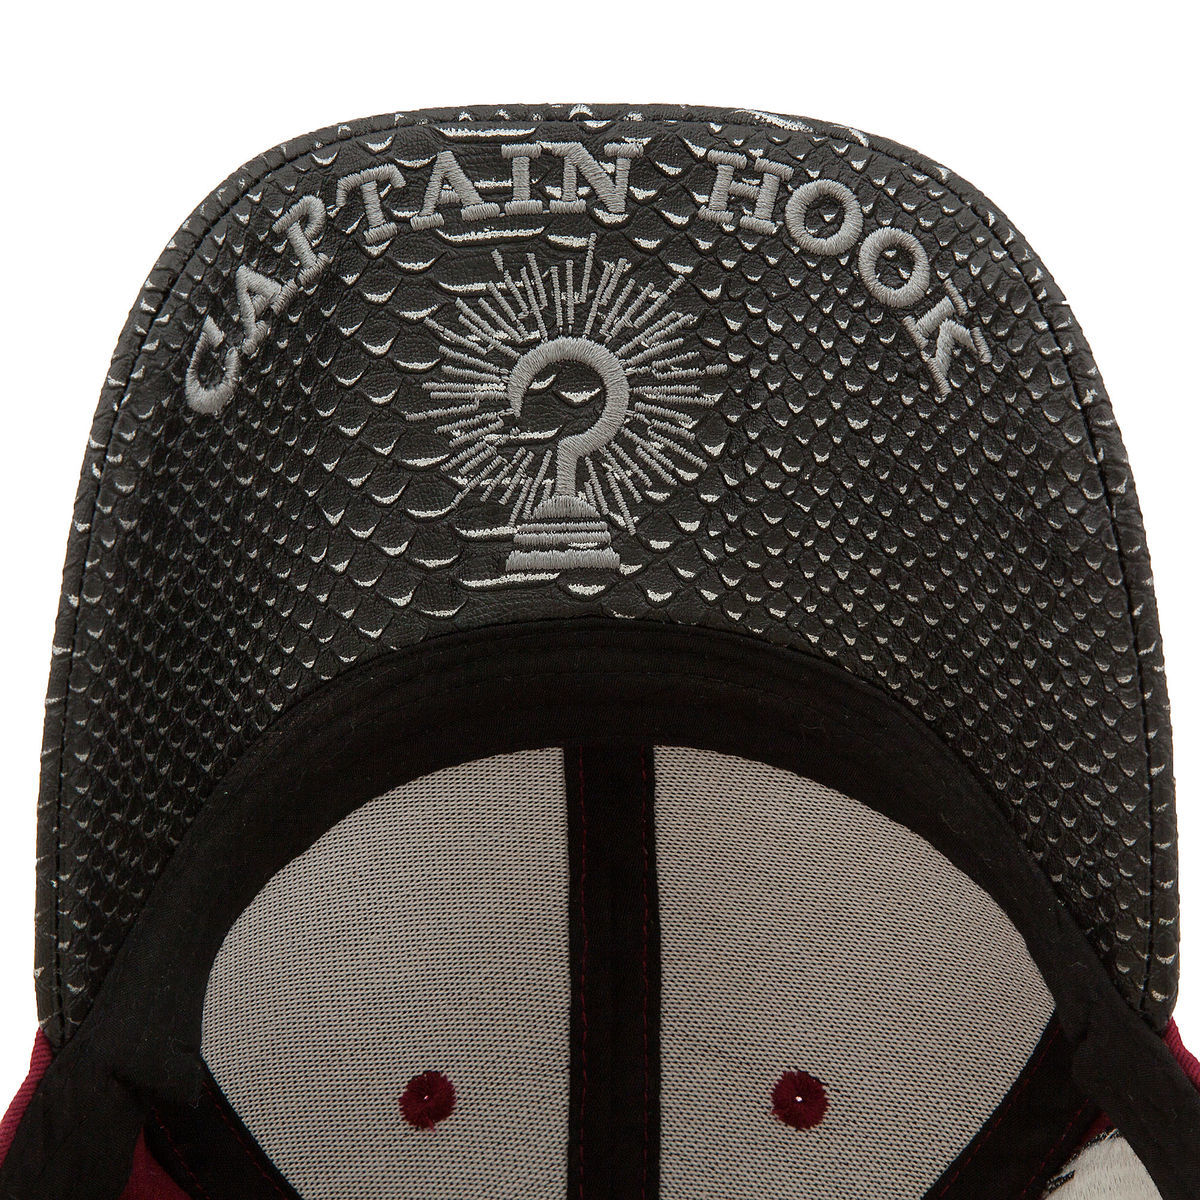 66a84e71b30 Captain Hook Baseball Cap for Adults by Cakeworthy